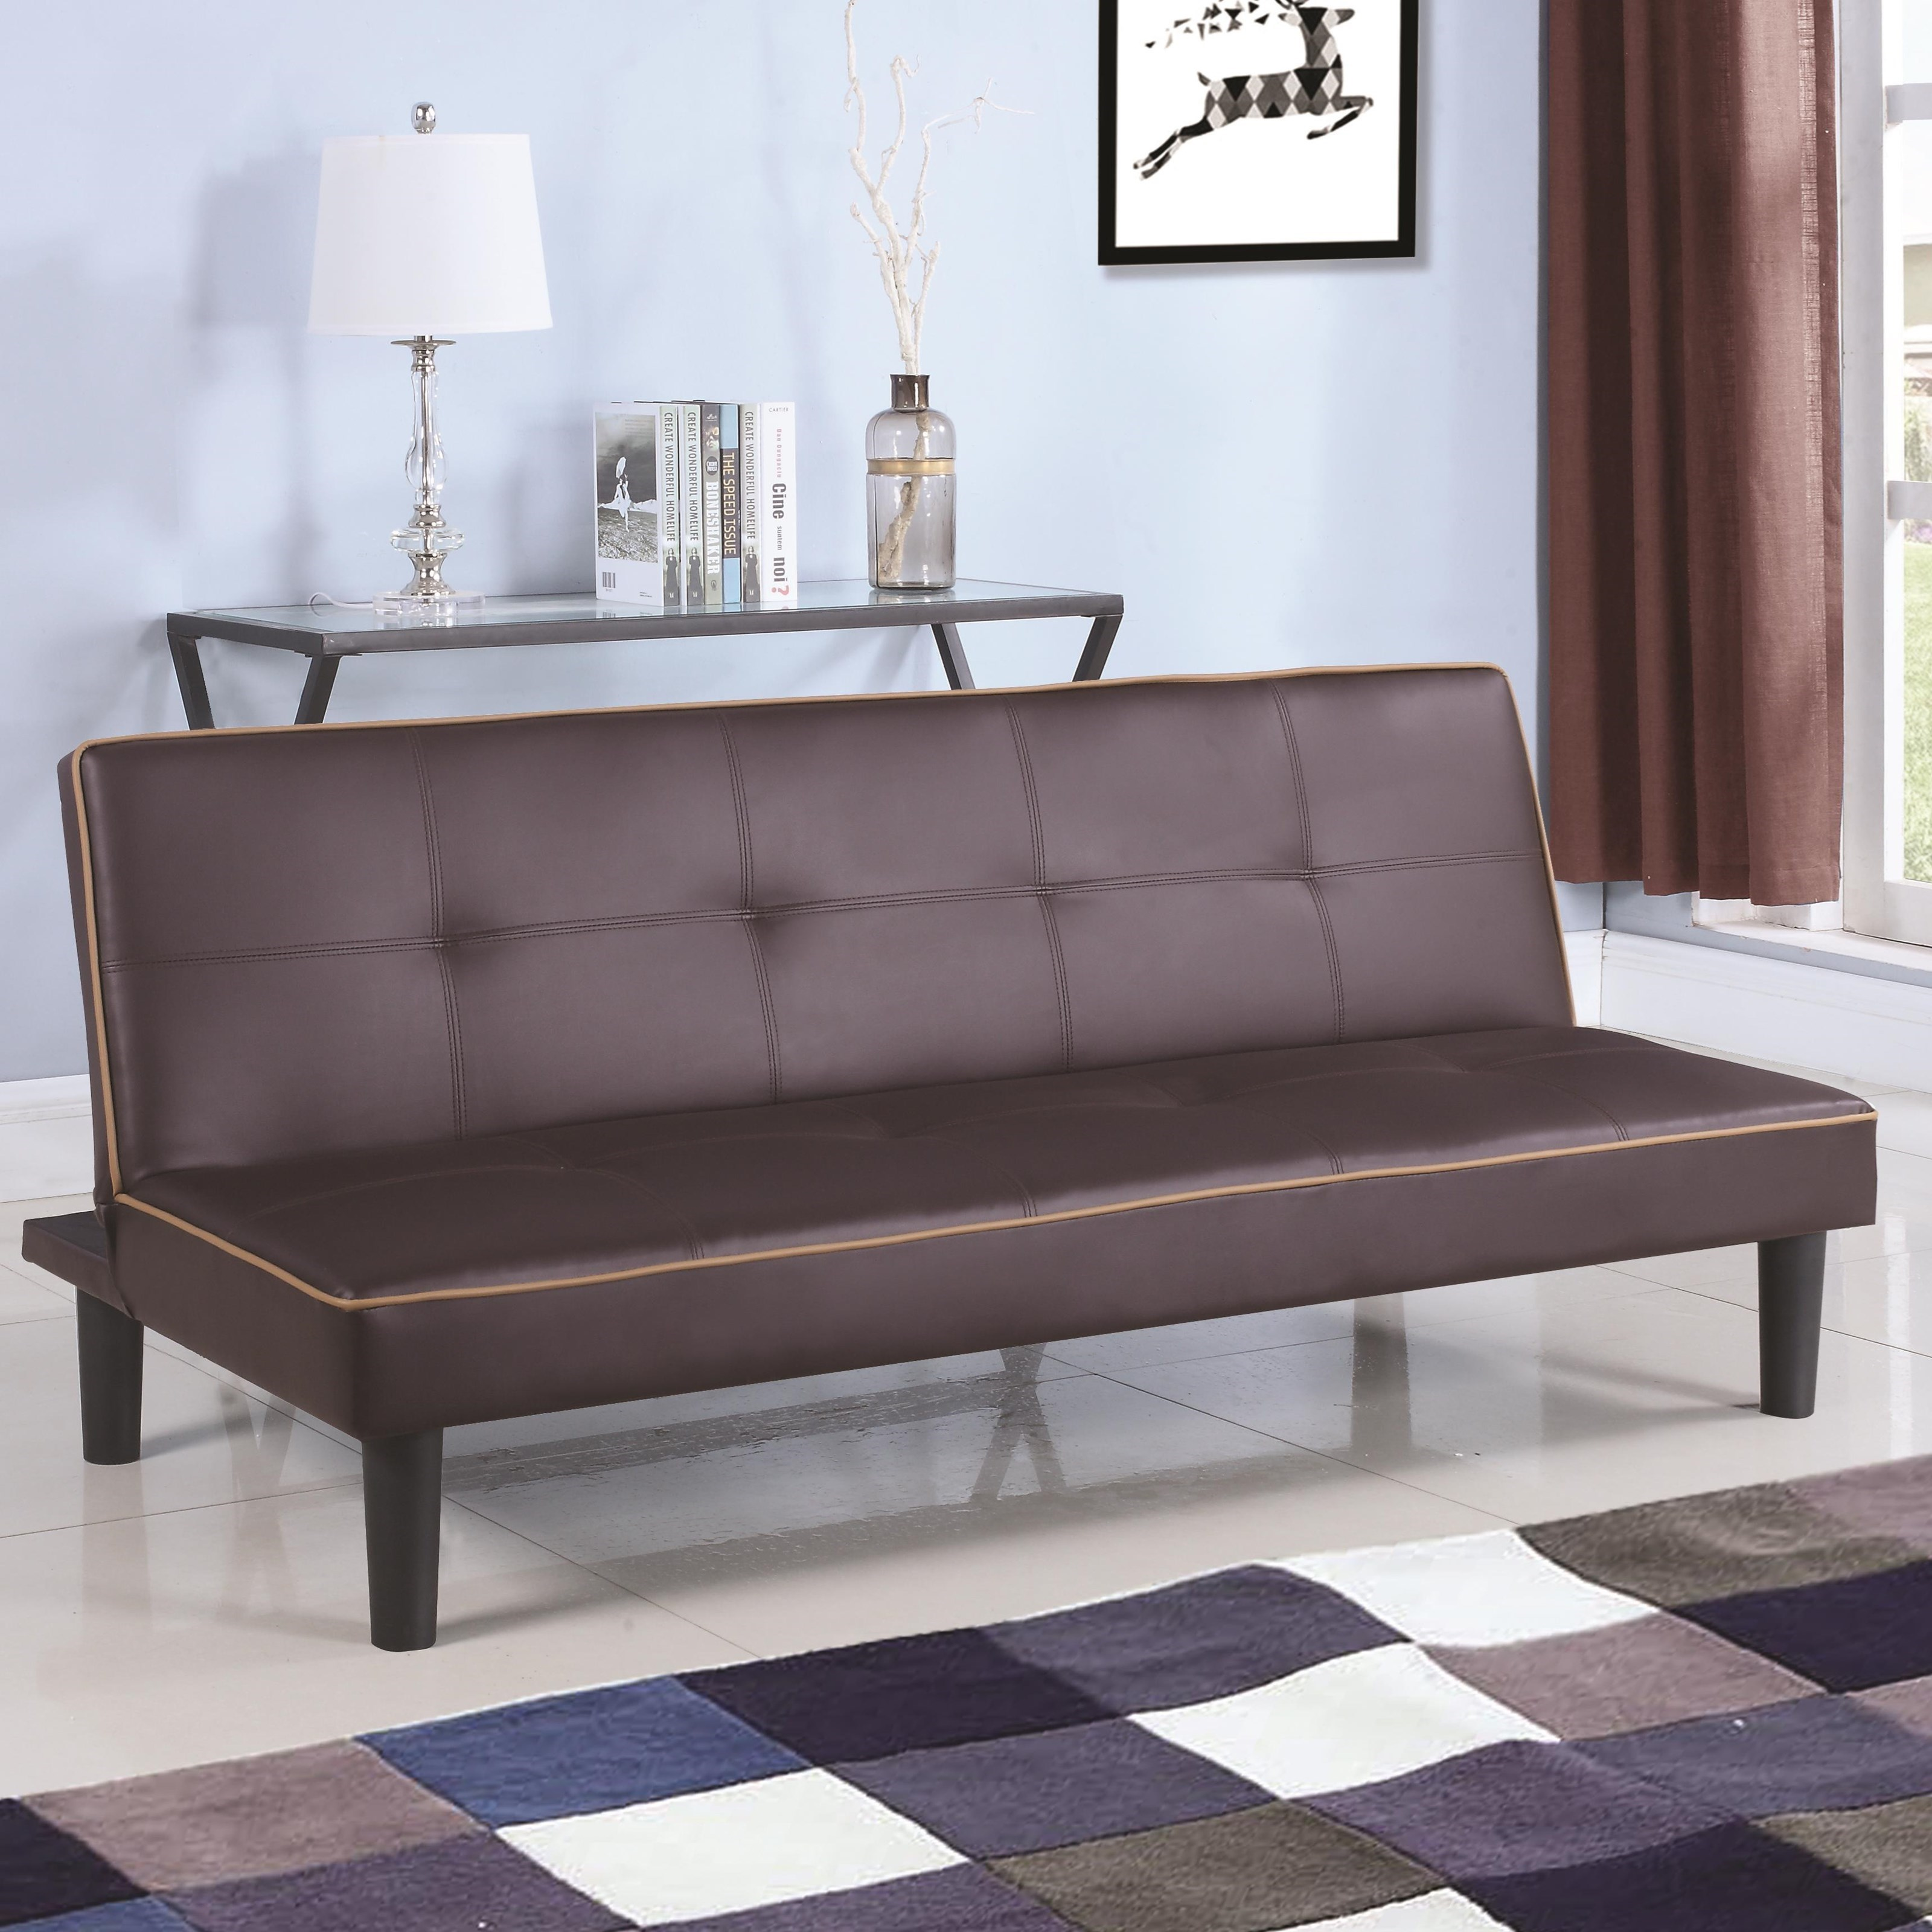 couch black products microfiber itm beds best sofa folding choice futon ebay bed